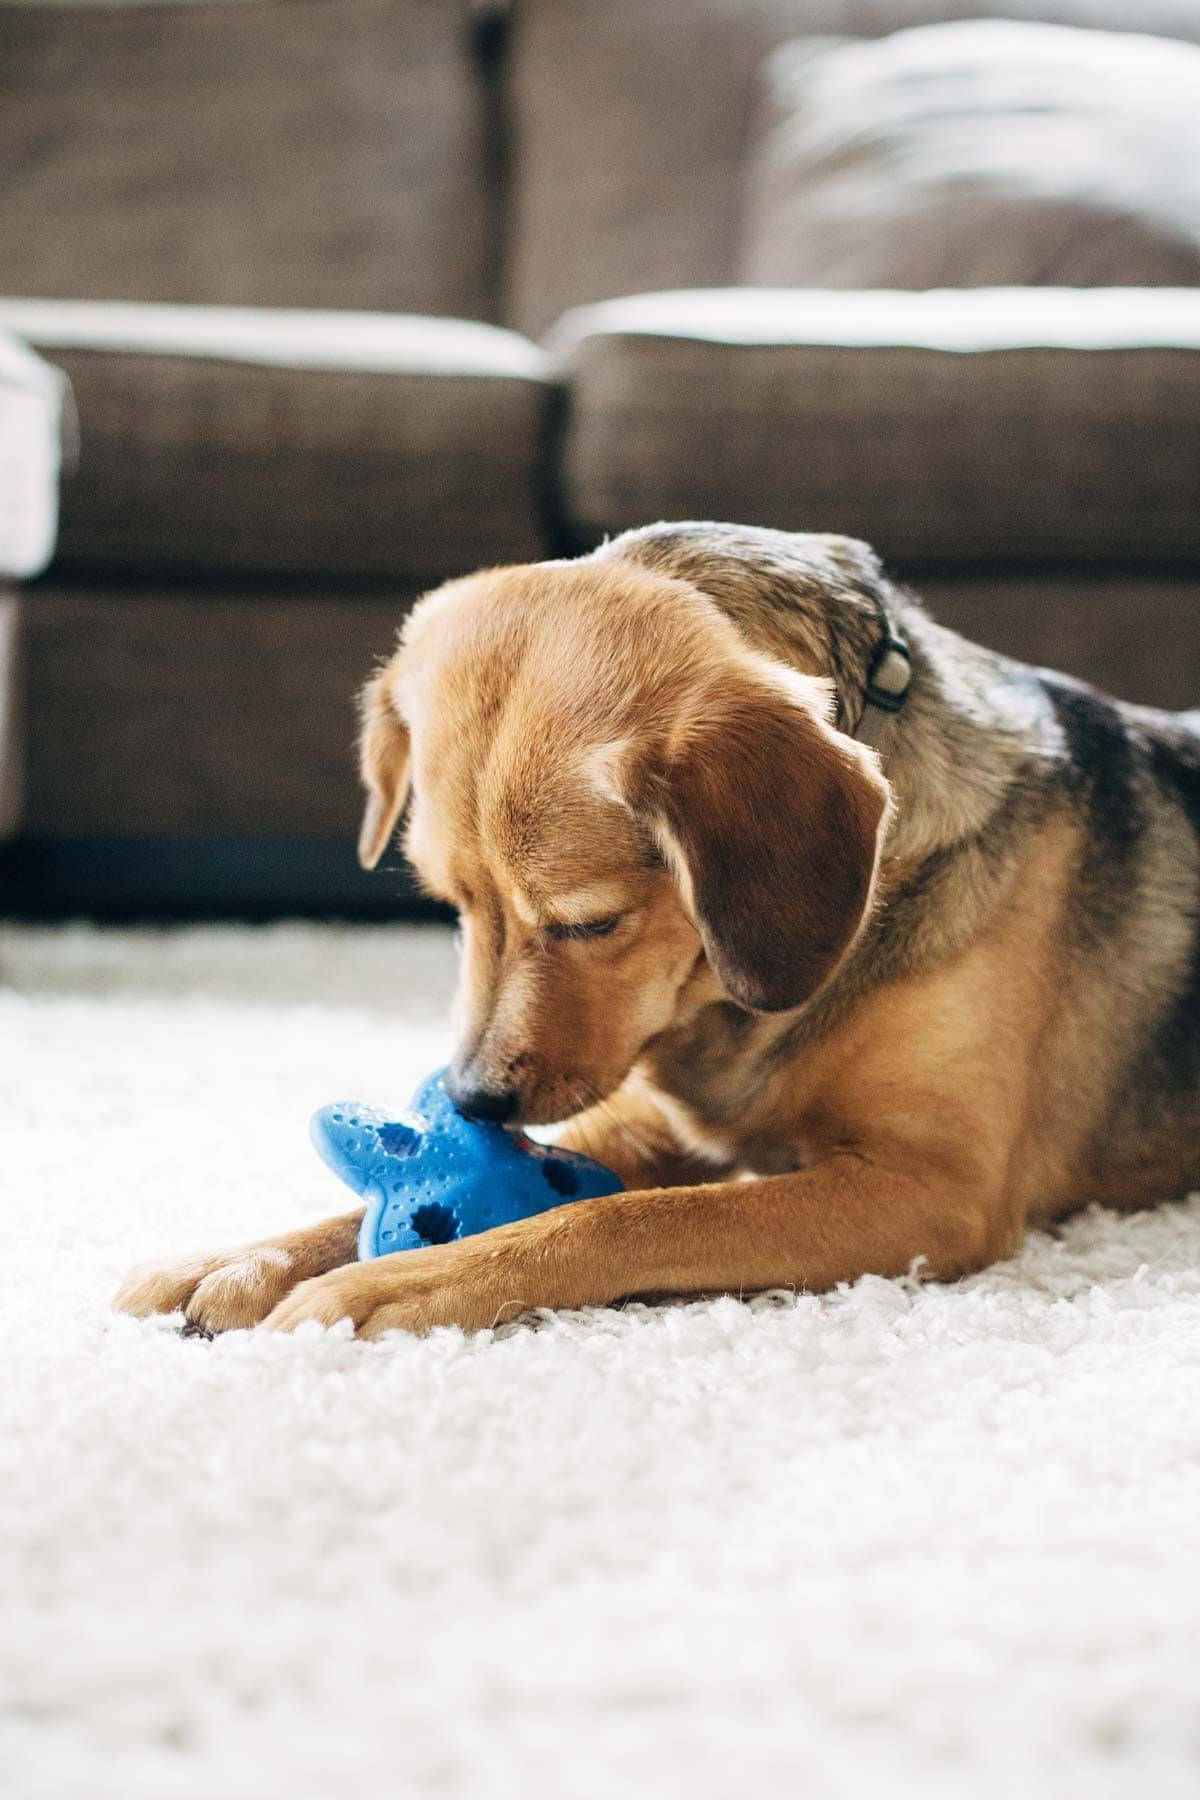 Dog playing with a toy.